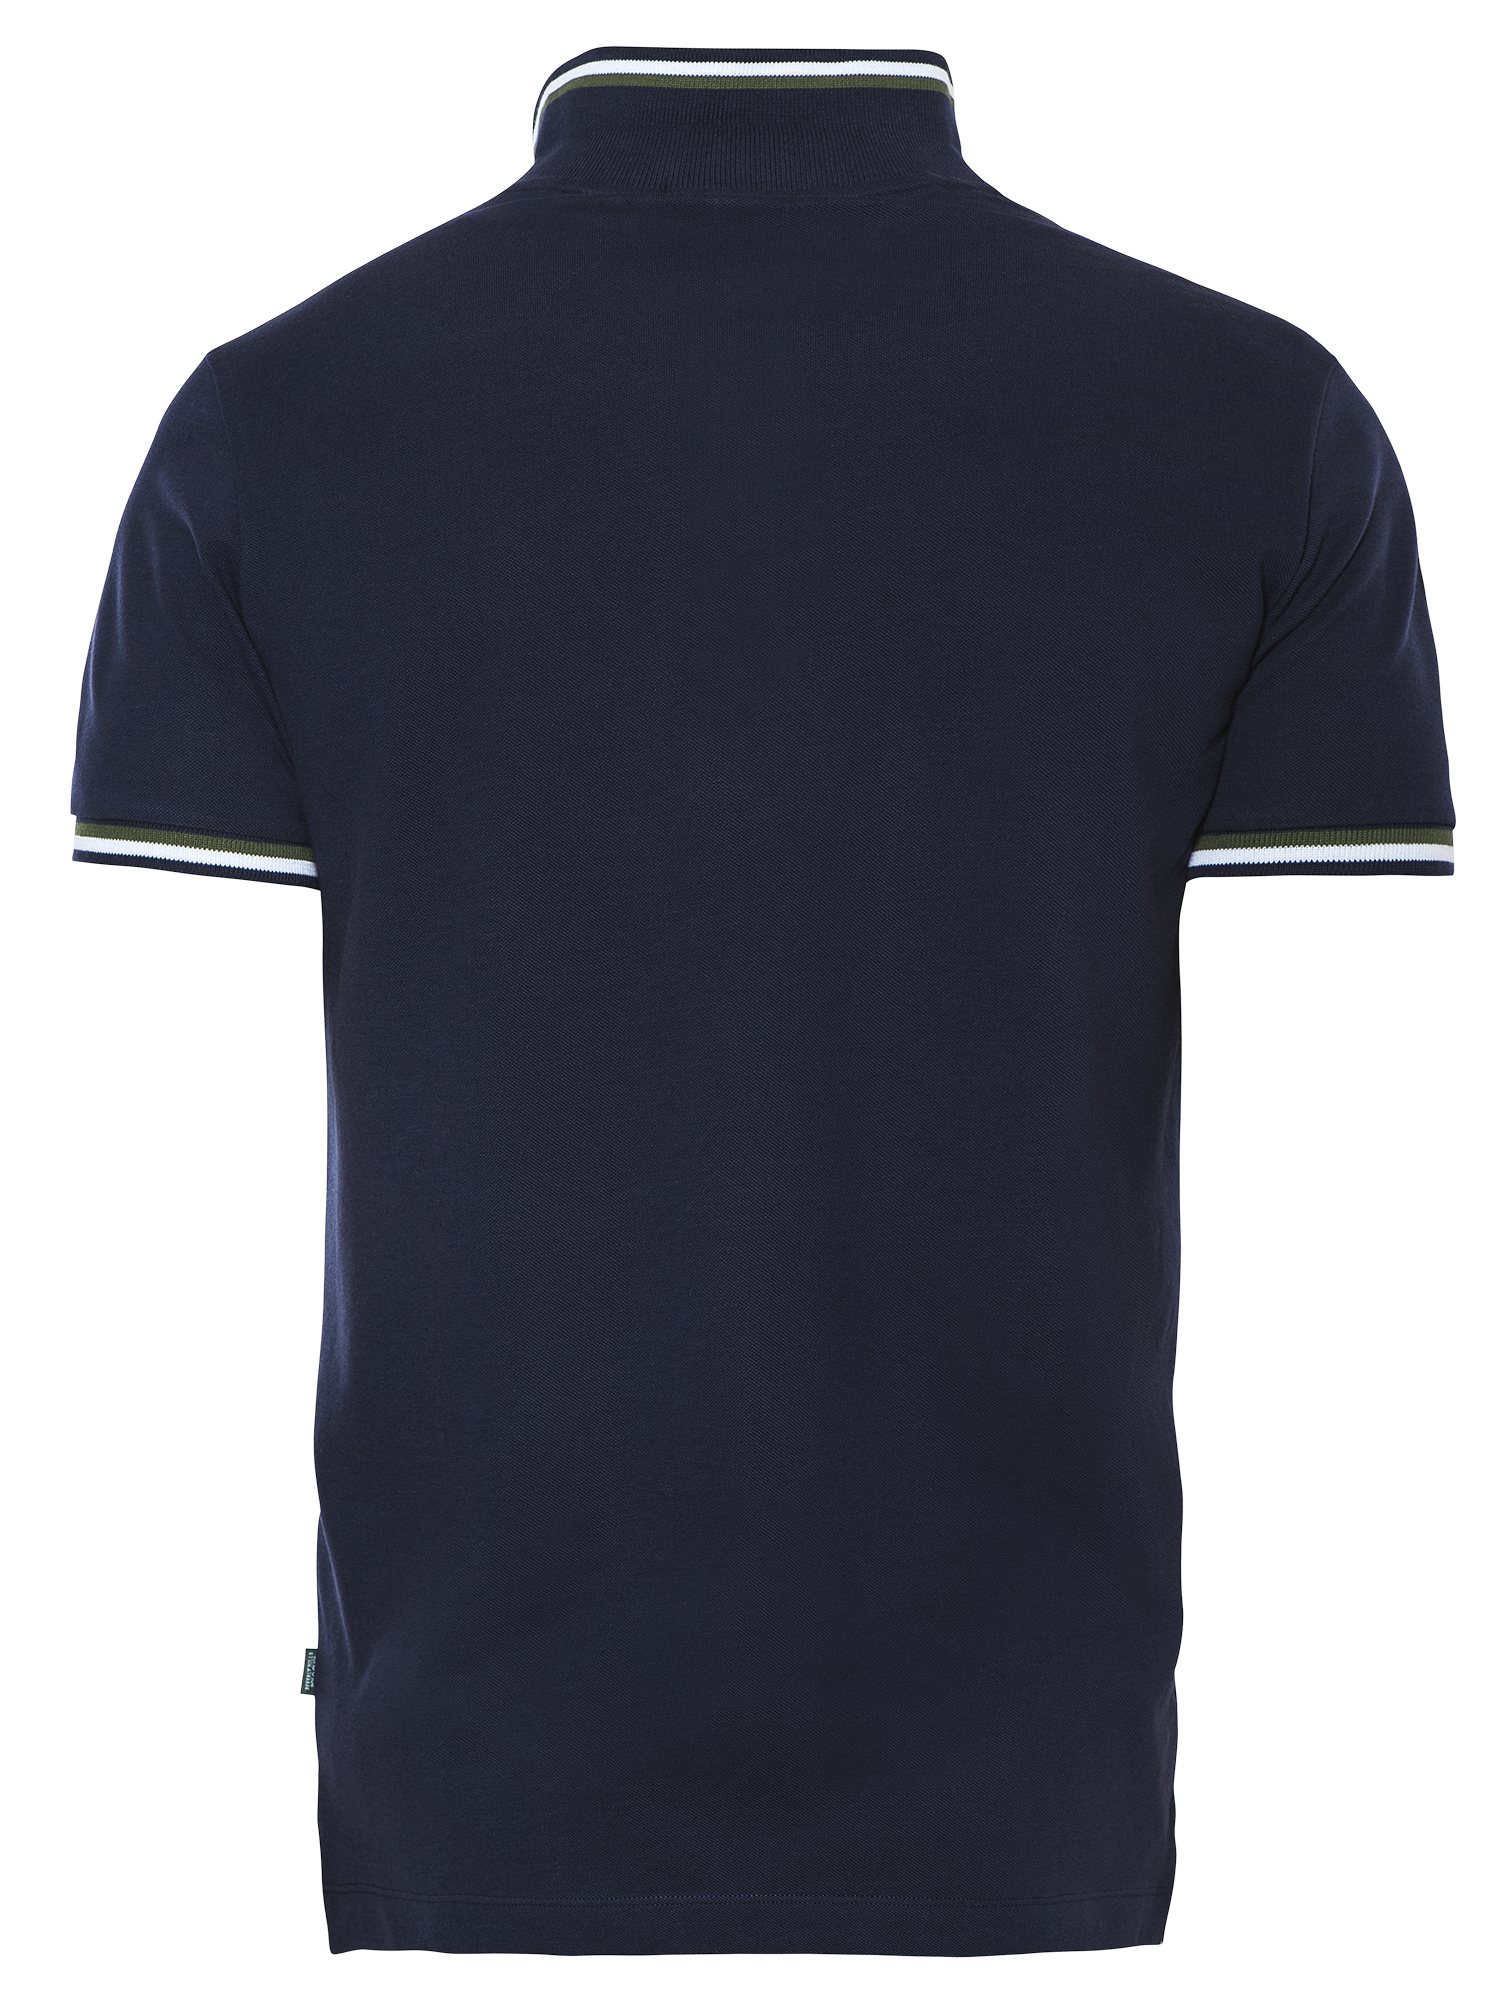 PREMIUM NAVY STRIPED REGULAR FIT PIQUÉ